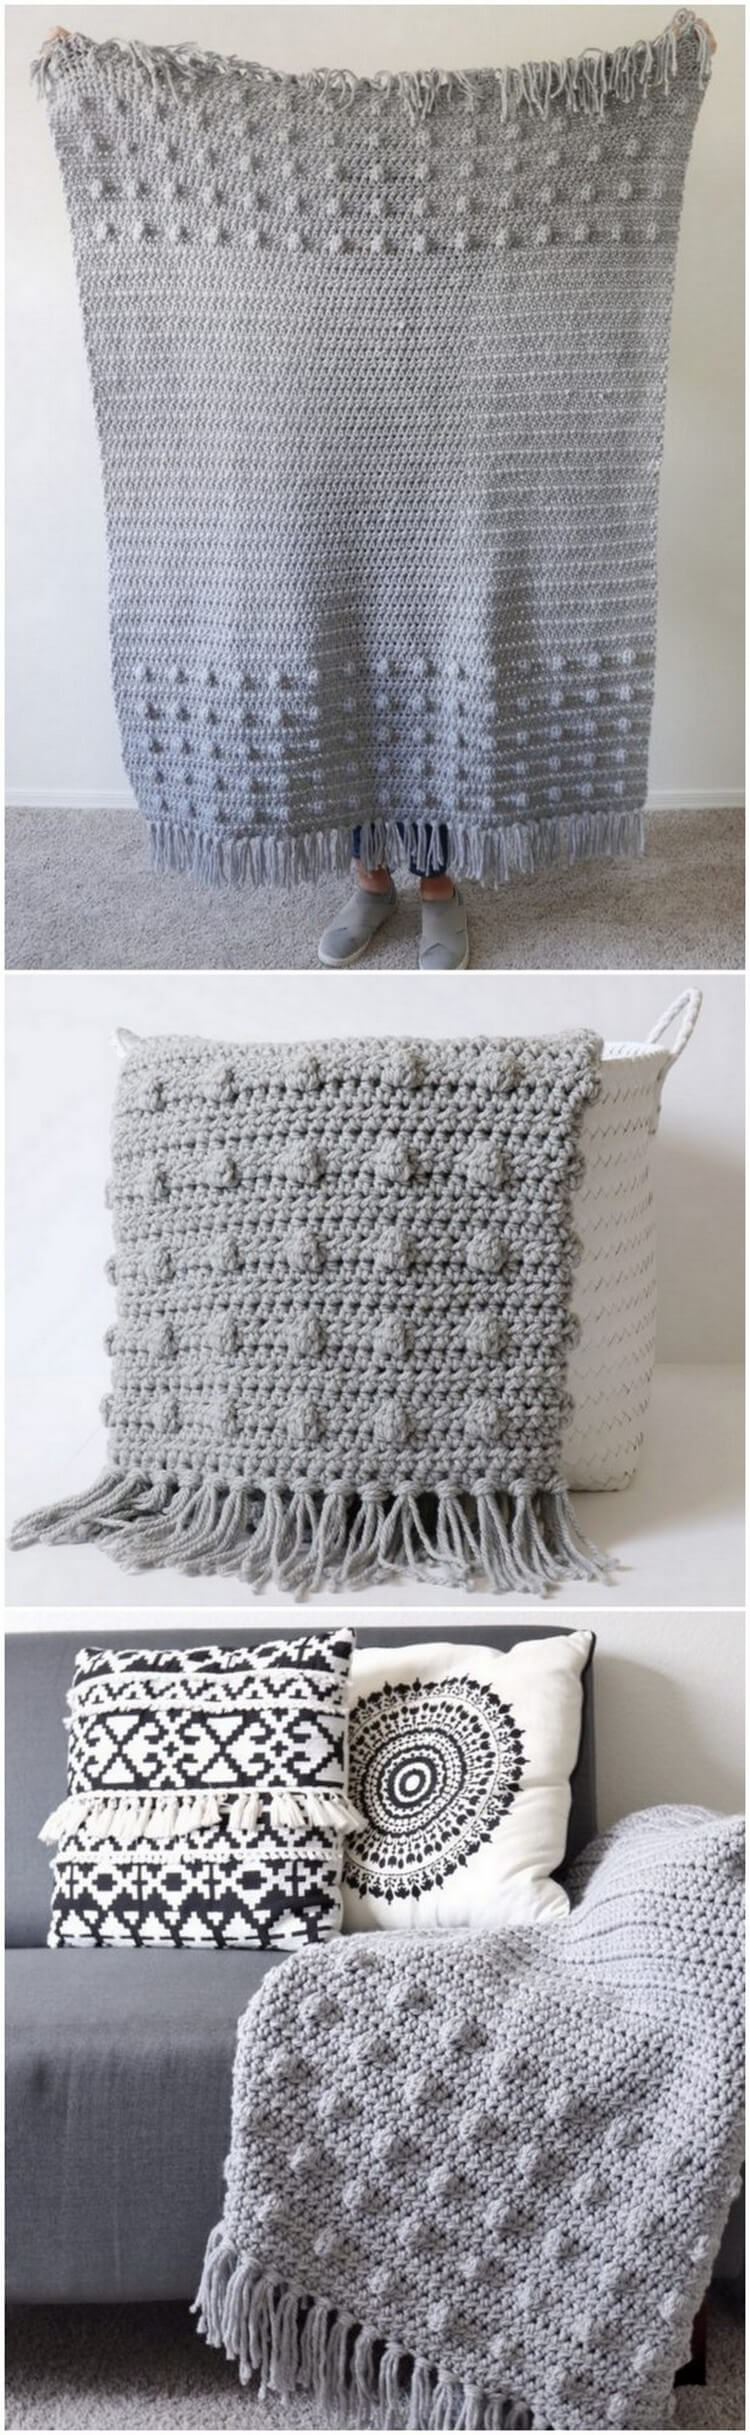 Crochet Blanket Pattern (13)